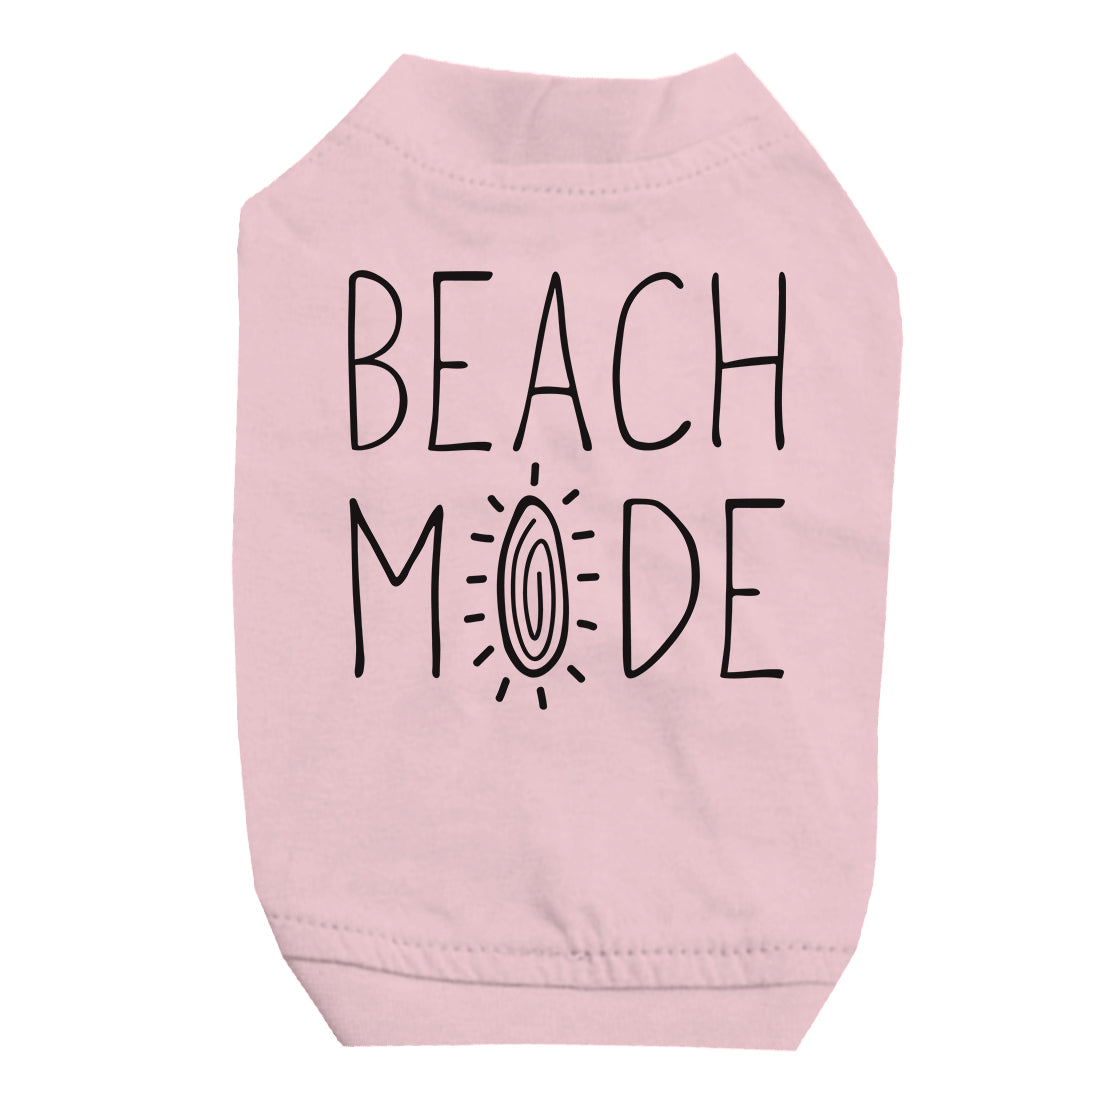 ef4937021 365 Printing Beach Mode Pet Shirt for Small Dogs Funny Saying Dog Shirt  Gifts